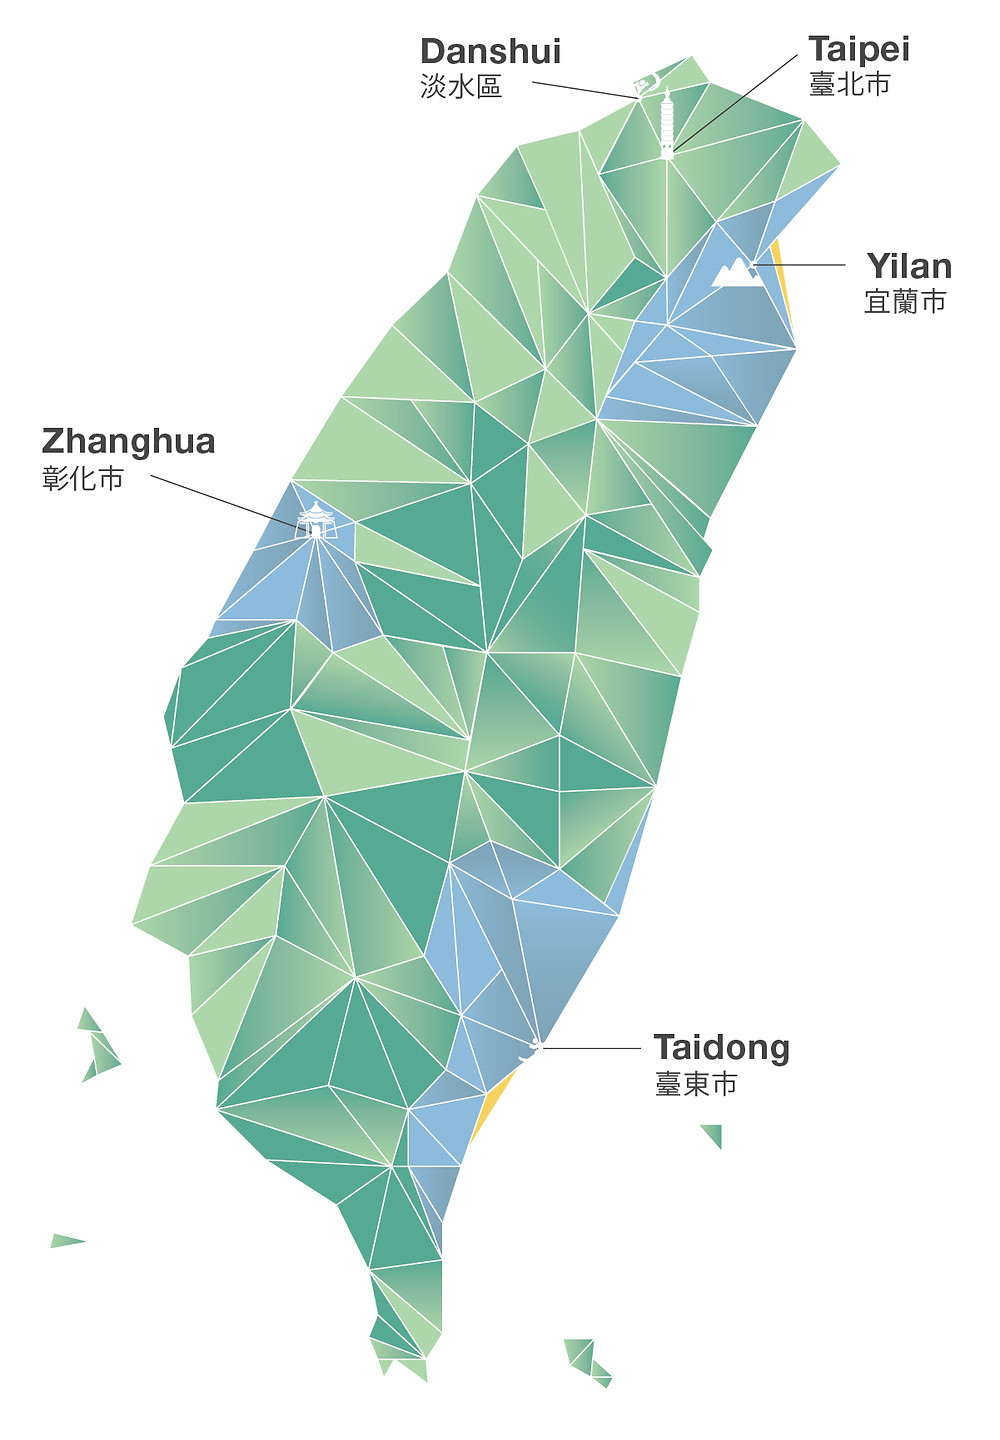 Yilan, Zhanghua, and Taidong are YWAM Taiwan's target locations